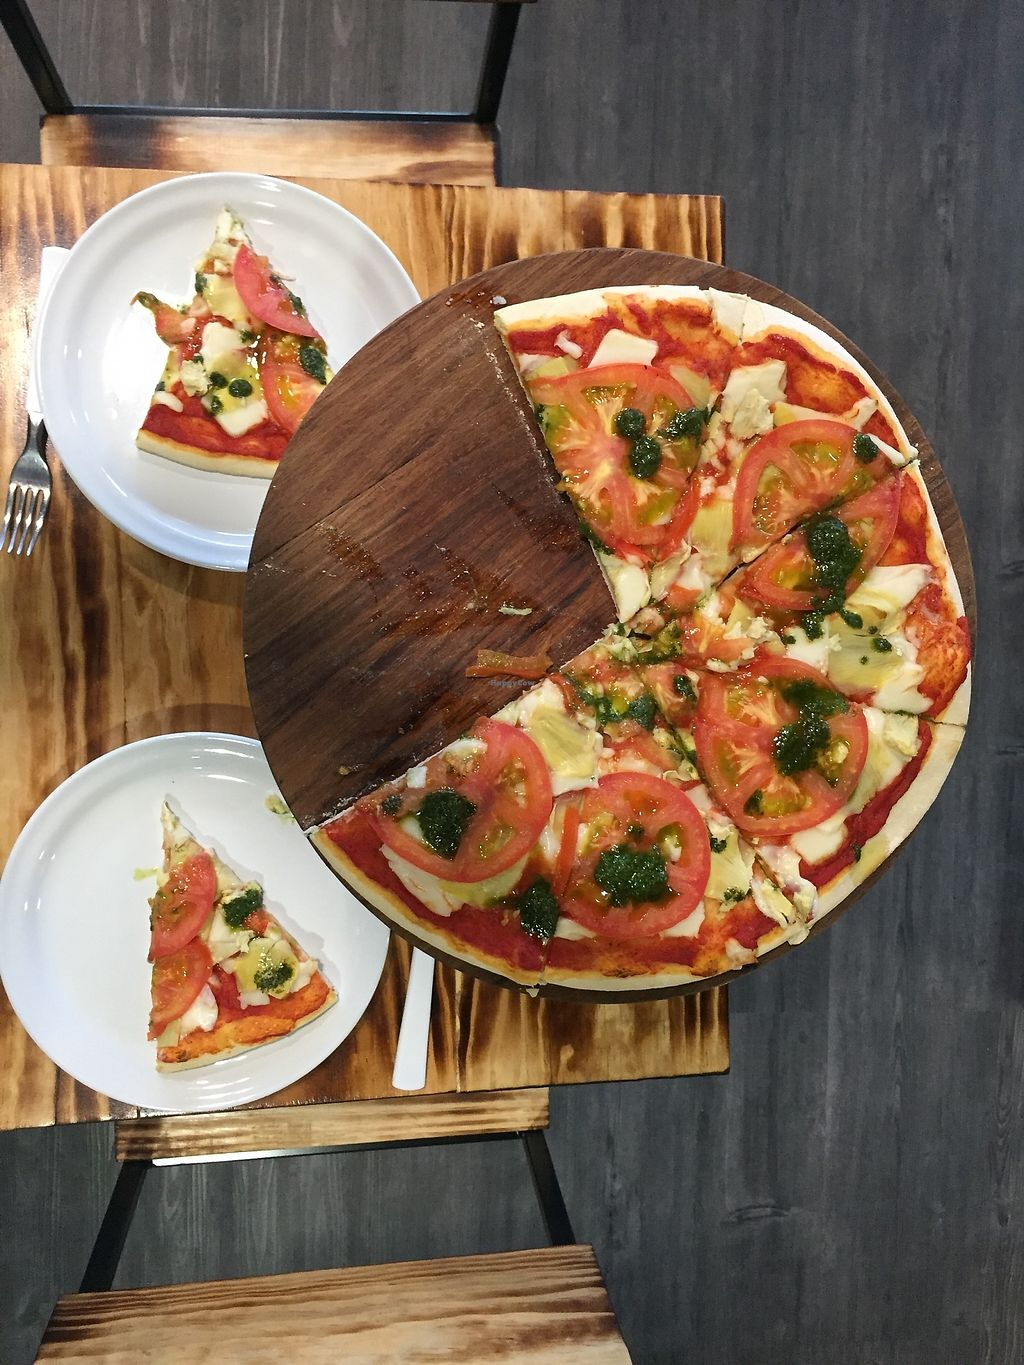 "Photo of Diez Barra Diez  by <a href=""/members/profile/kriziasc"">kriziasc</a> <br/>Best vegan pizza ever! <br/> June 27, 2017  - <a href='/contact/abuse/image/94335/273842'>Report</a>"